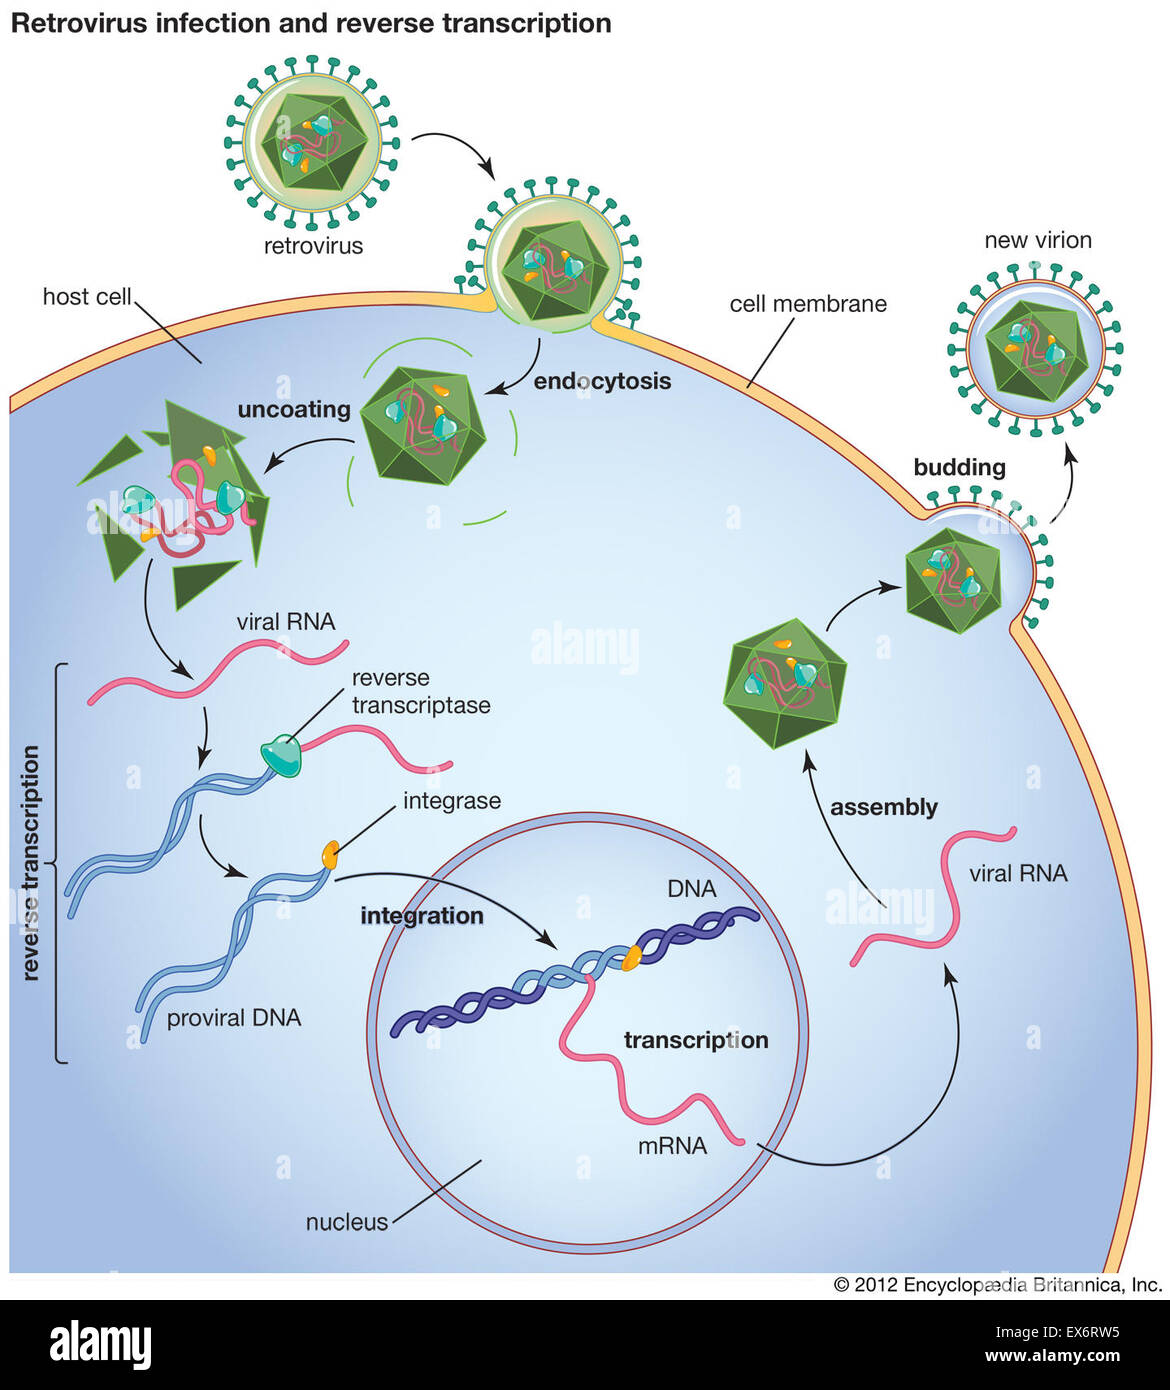 hight resolution of retrovirus infection and reverse transcription stock image